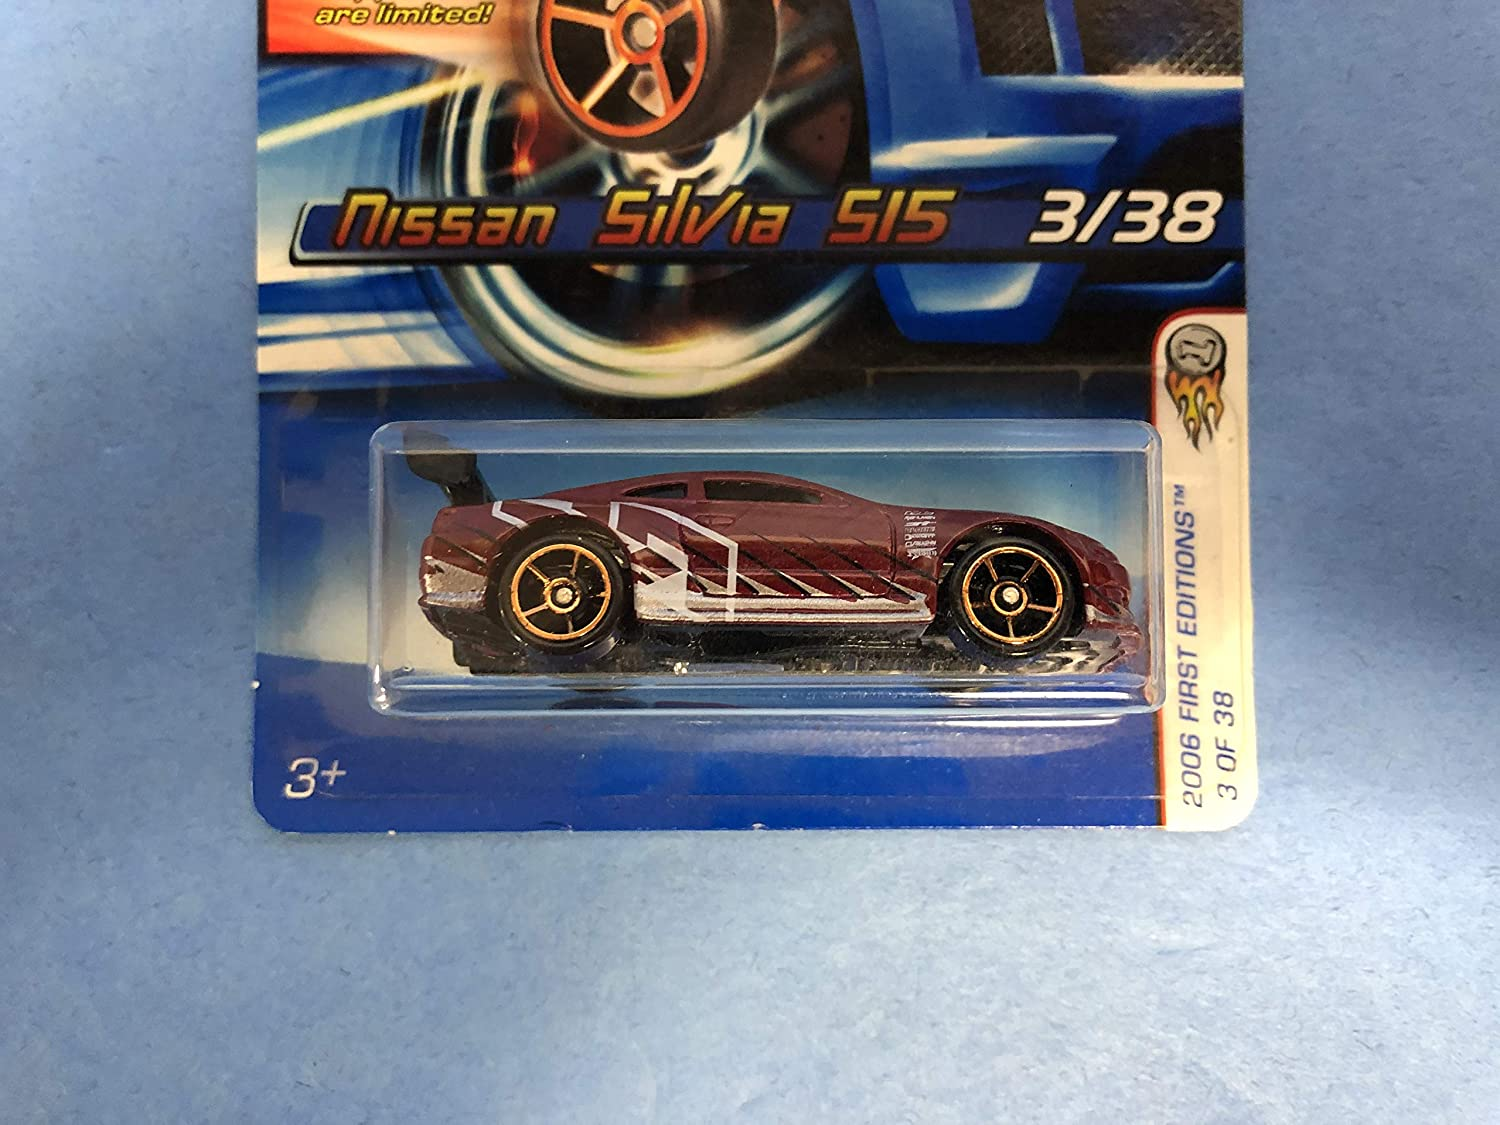 Nissan Silvia SI5 No. 003 Hot Wheels 2006 First Edition diecast 1/64 scale car